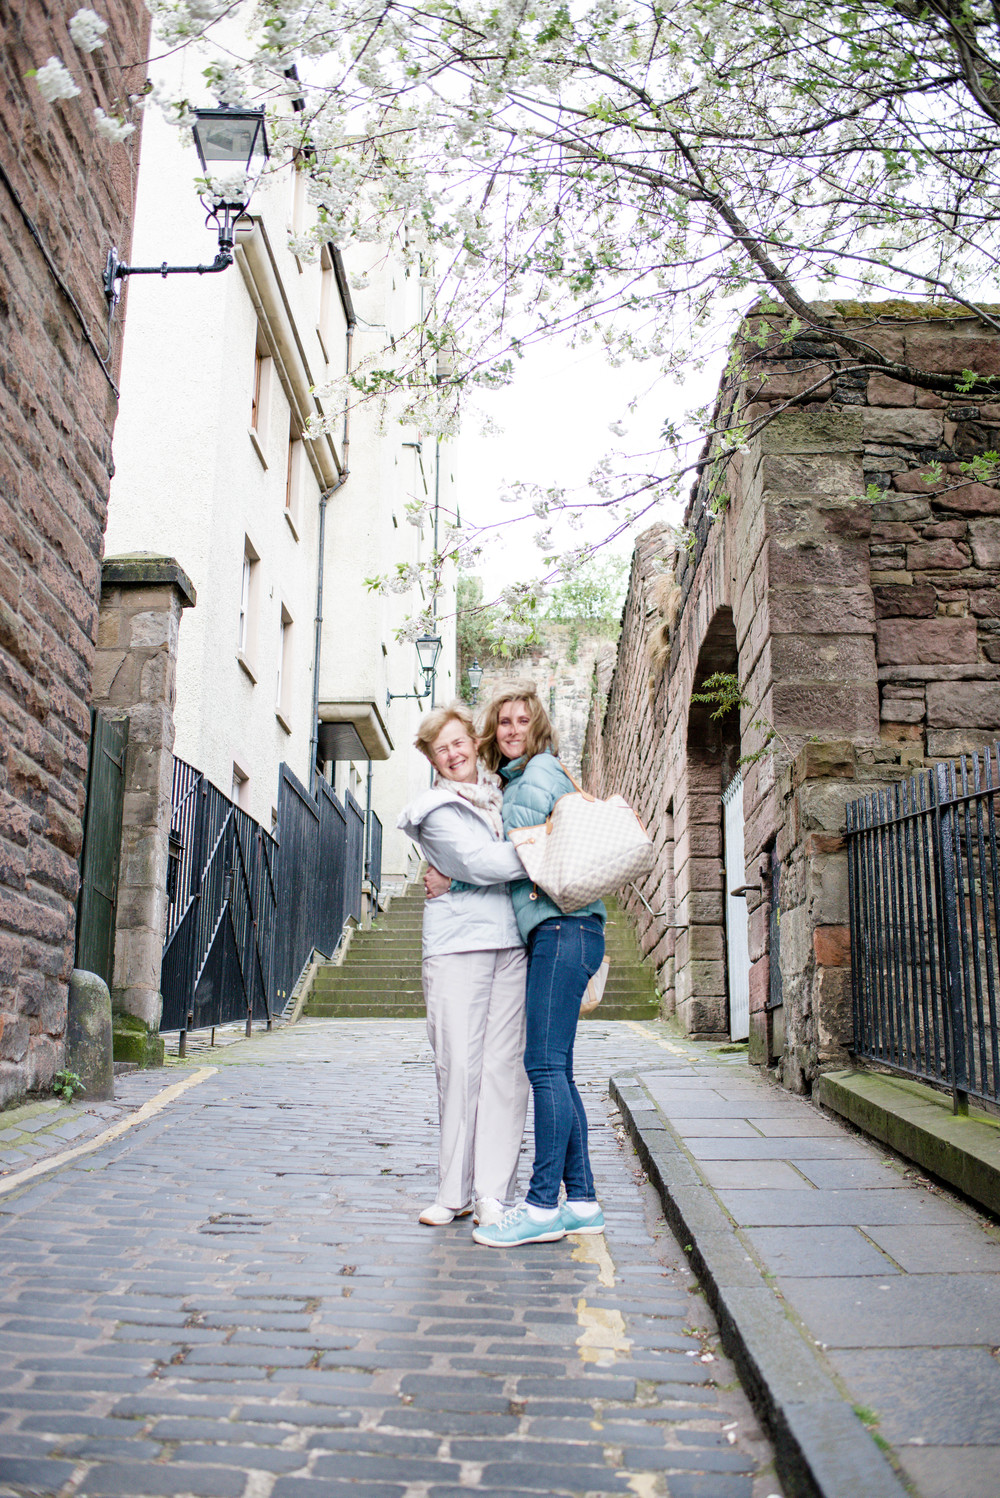 flytographer-mother daughter trip-birthday-edinburgh-scotland